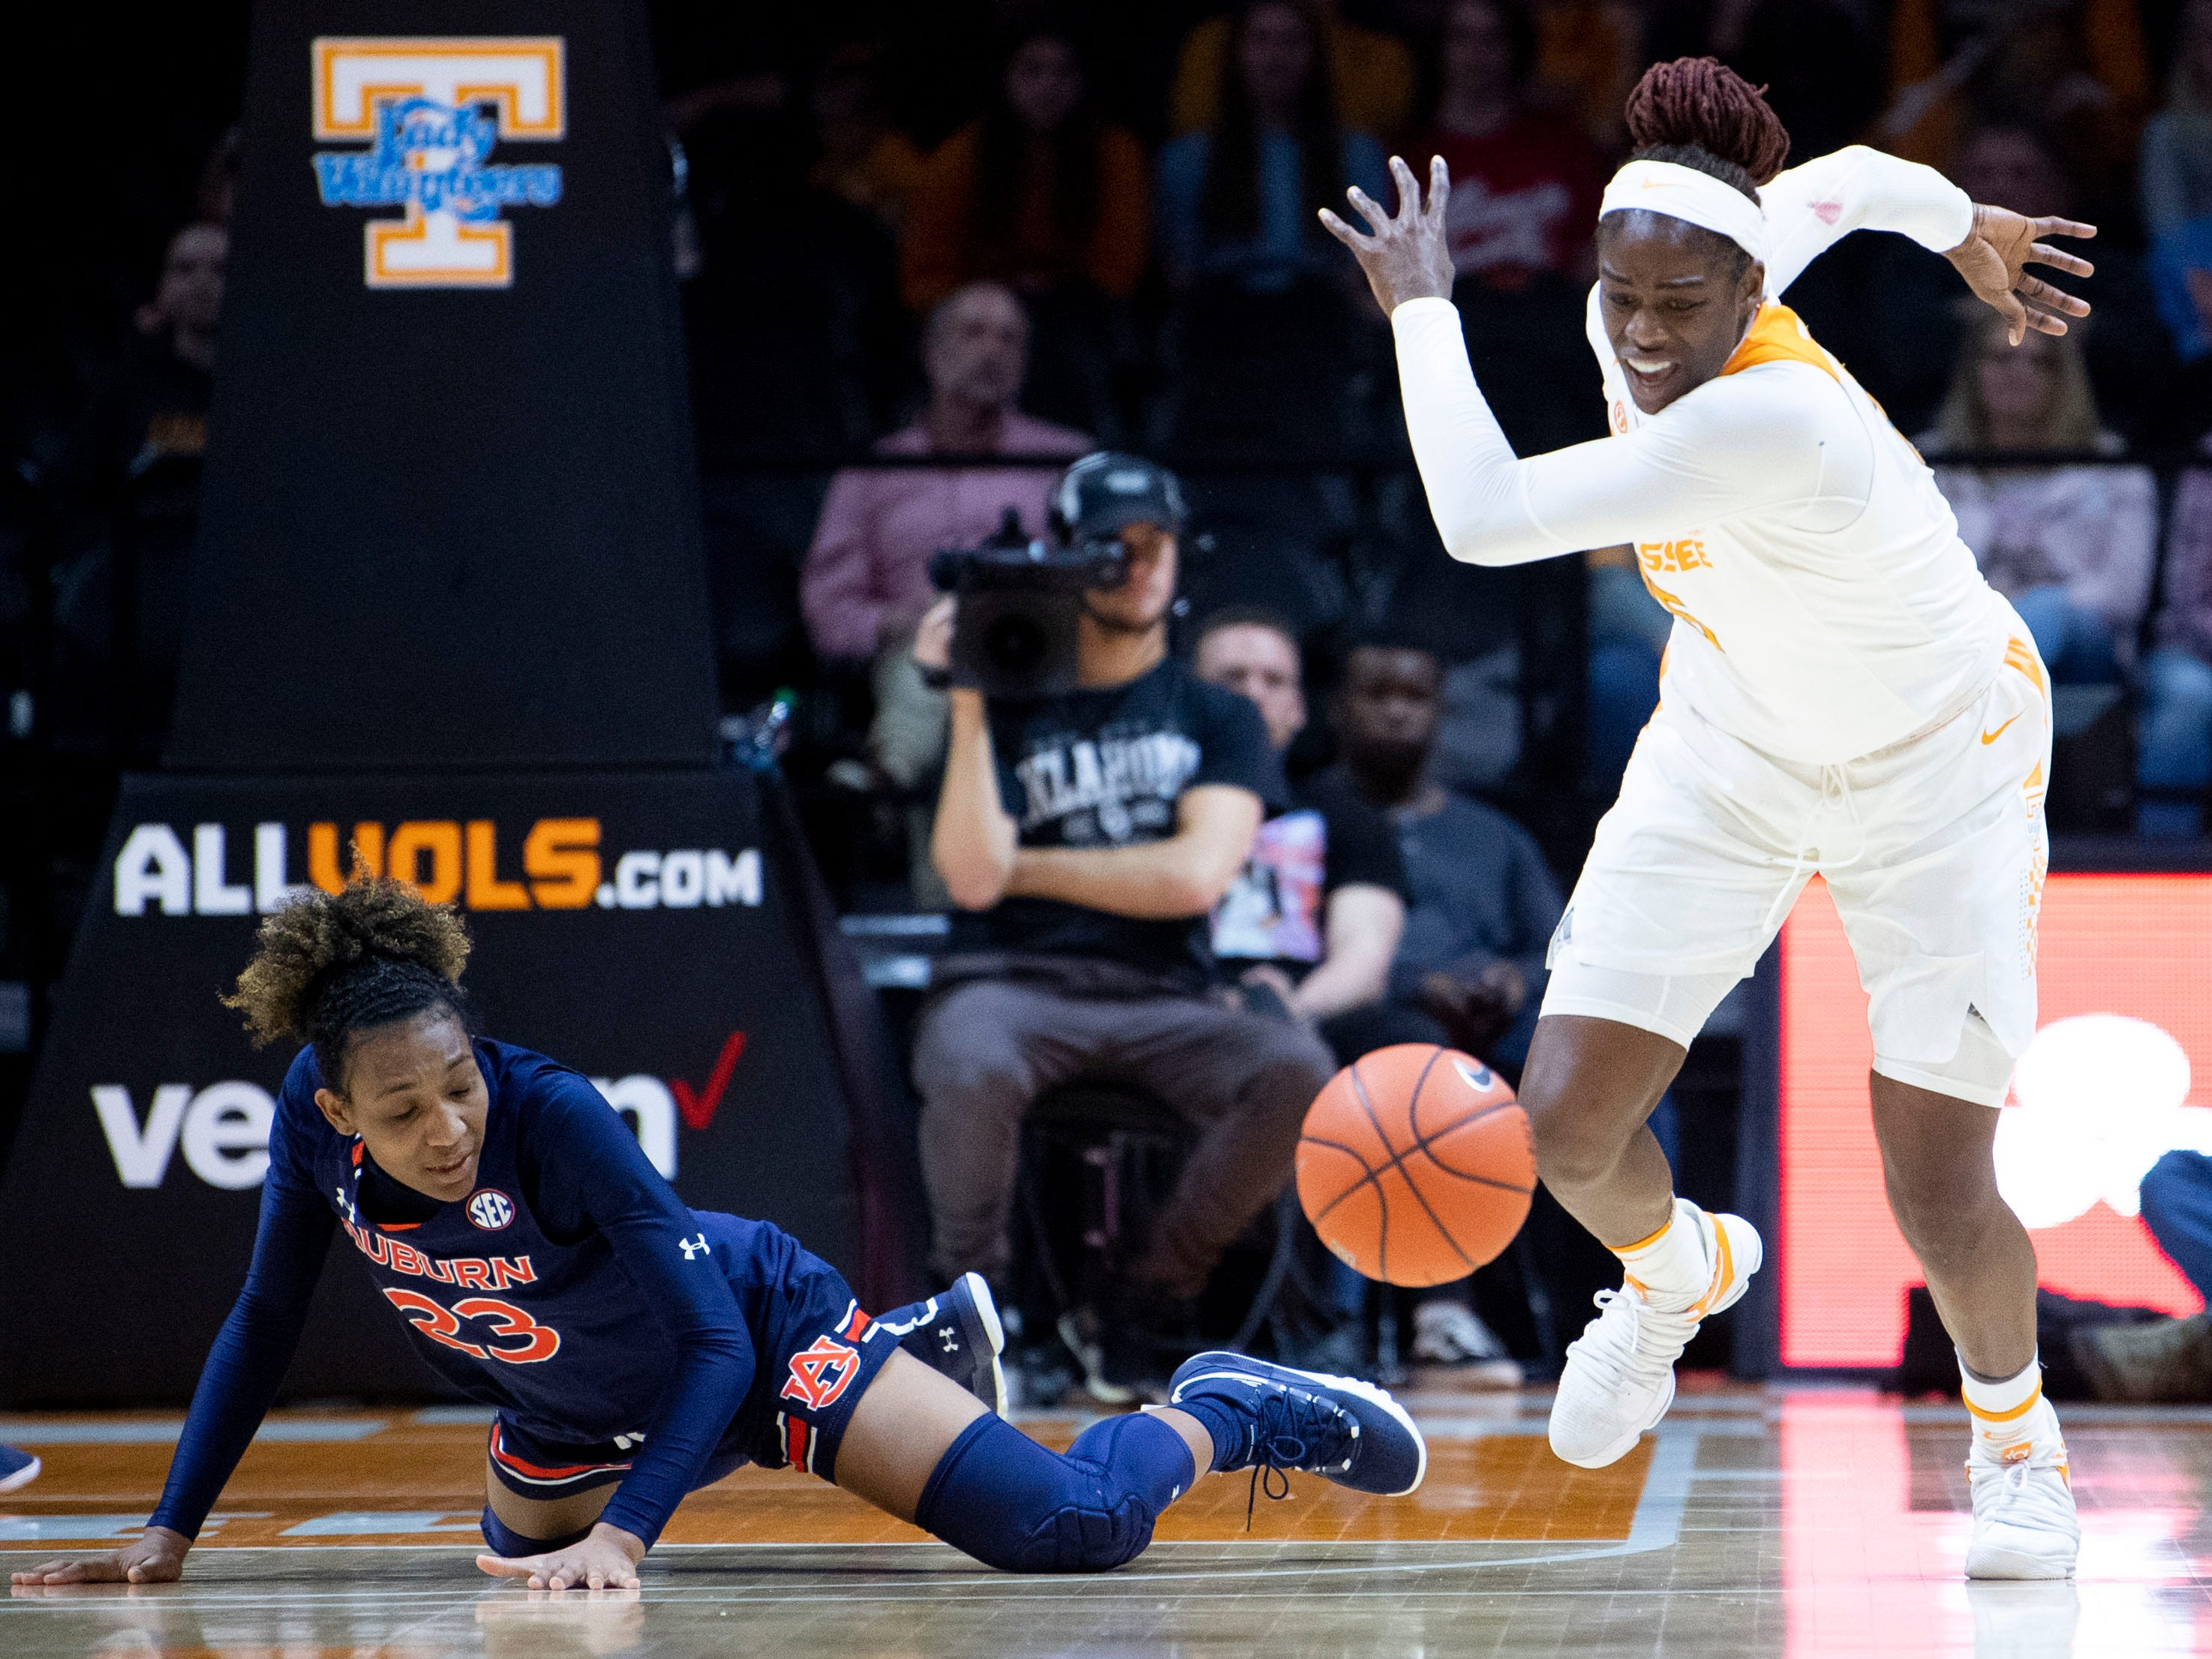 Tennessee's Cheridene Green (15) steals the ball from Auburn's Crystal Primm (23) on Thursday, February 14, 2019.